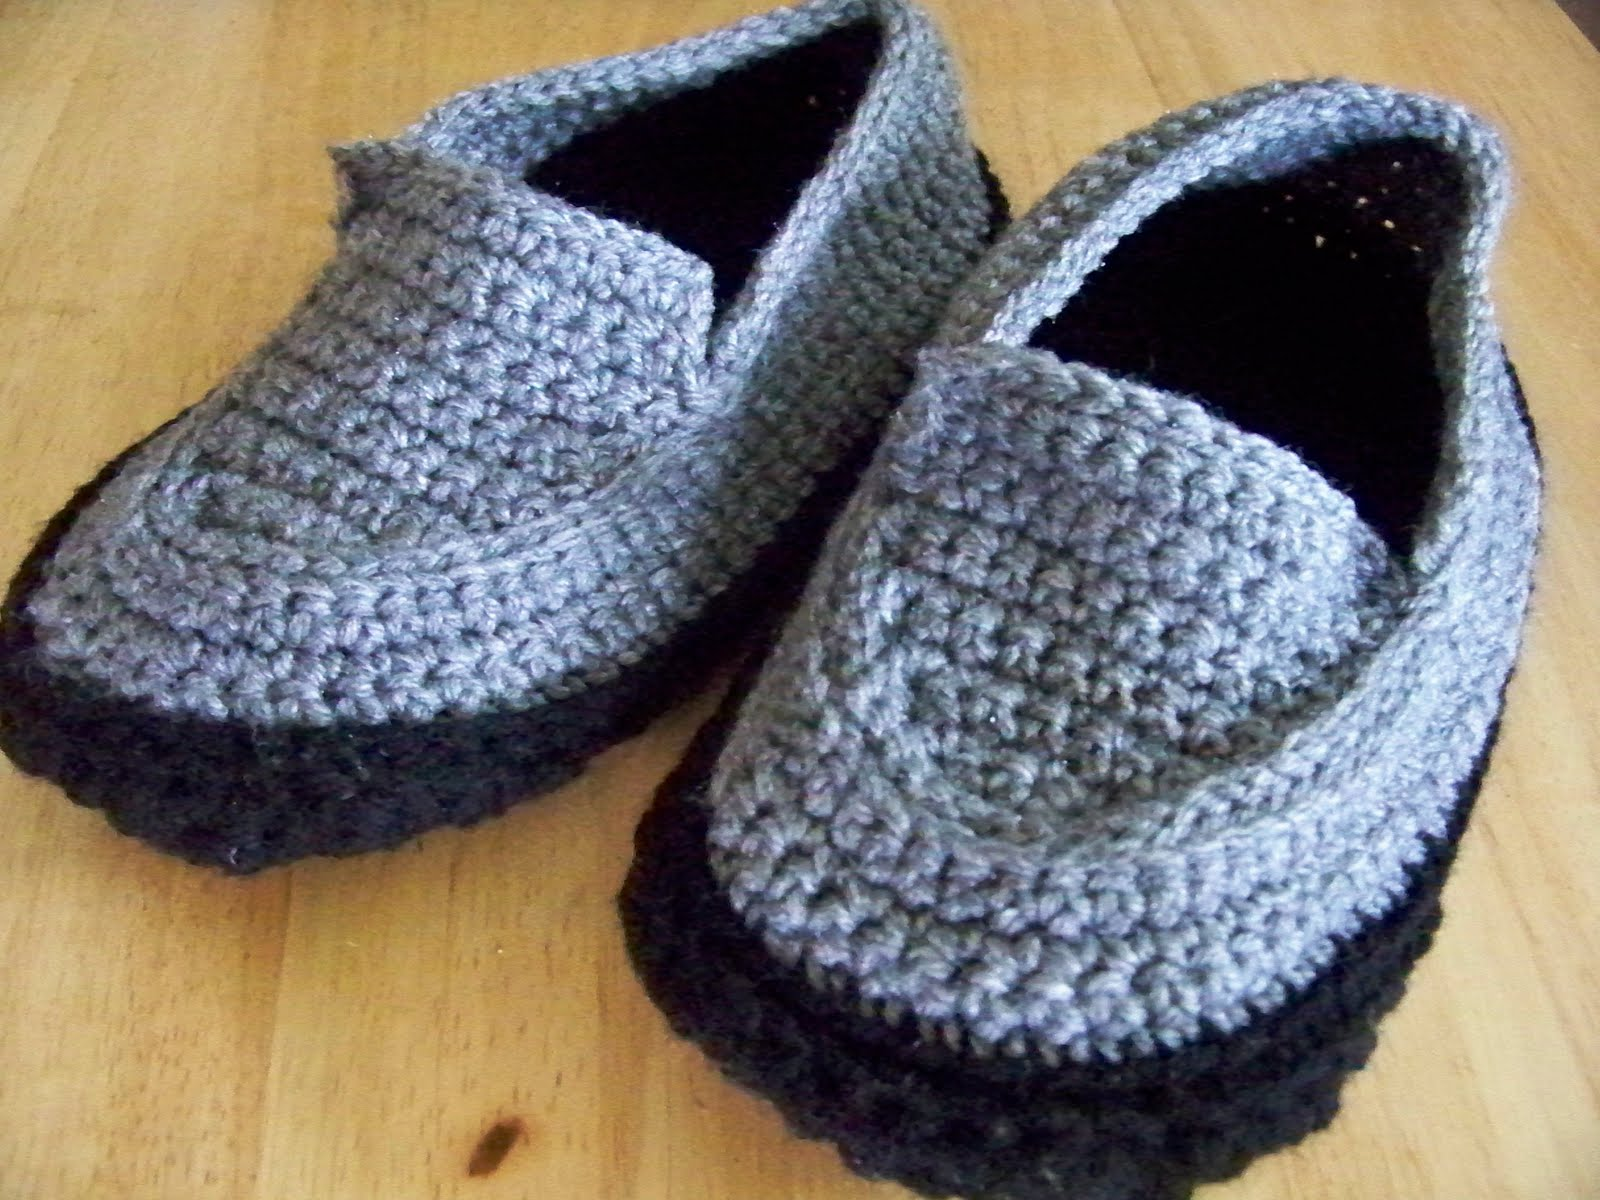 Crochet Patterns Slippers : my brother some slippers for his birthday but couldnt find a pattern ...